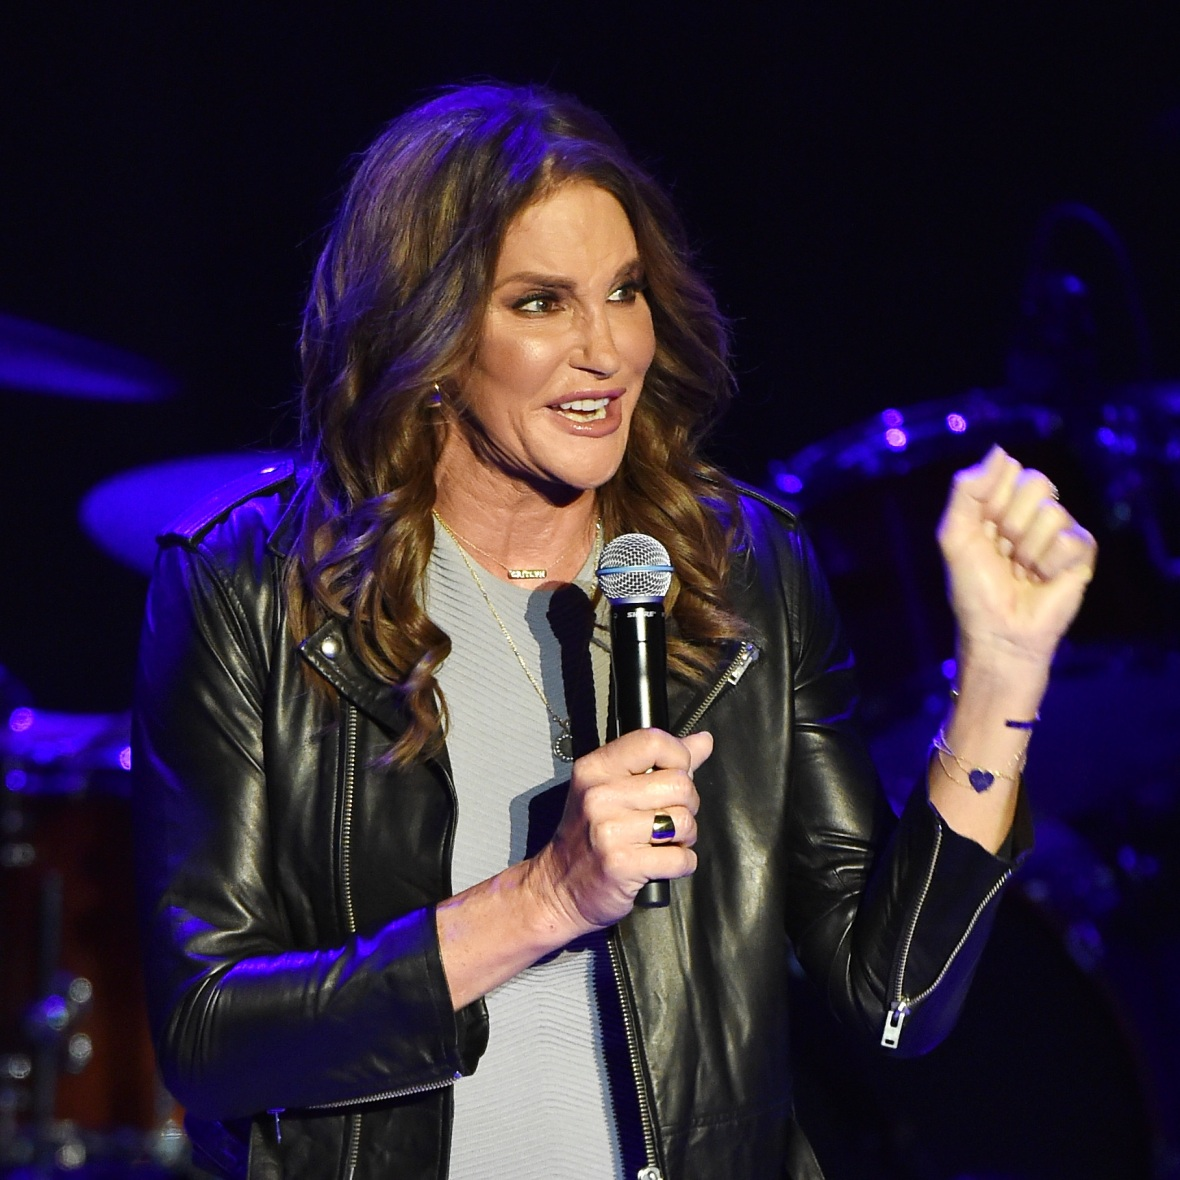 caitlyn-jenner-i-am-cait-reveal-sexuality-identity